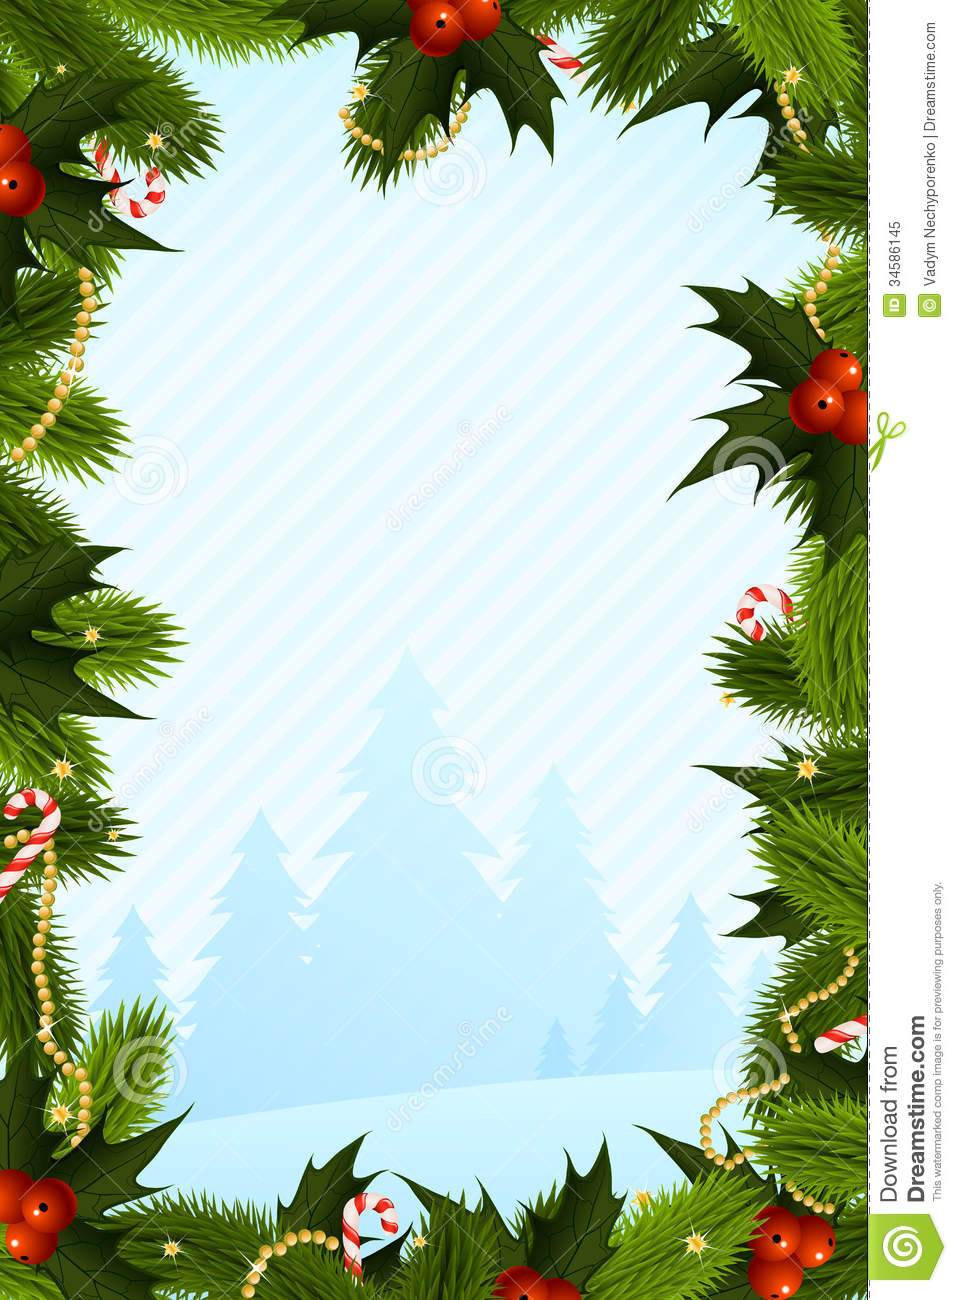 Christmas Card Template. Shape, Illustration.  Free Xmas Card Template